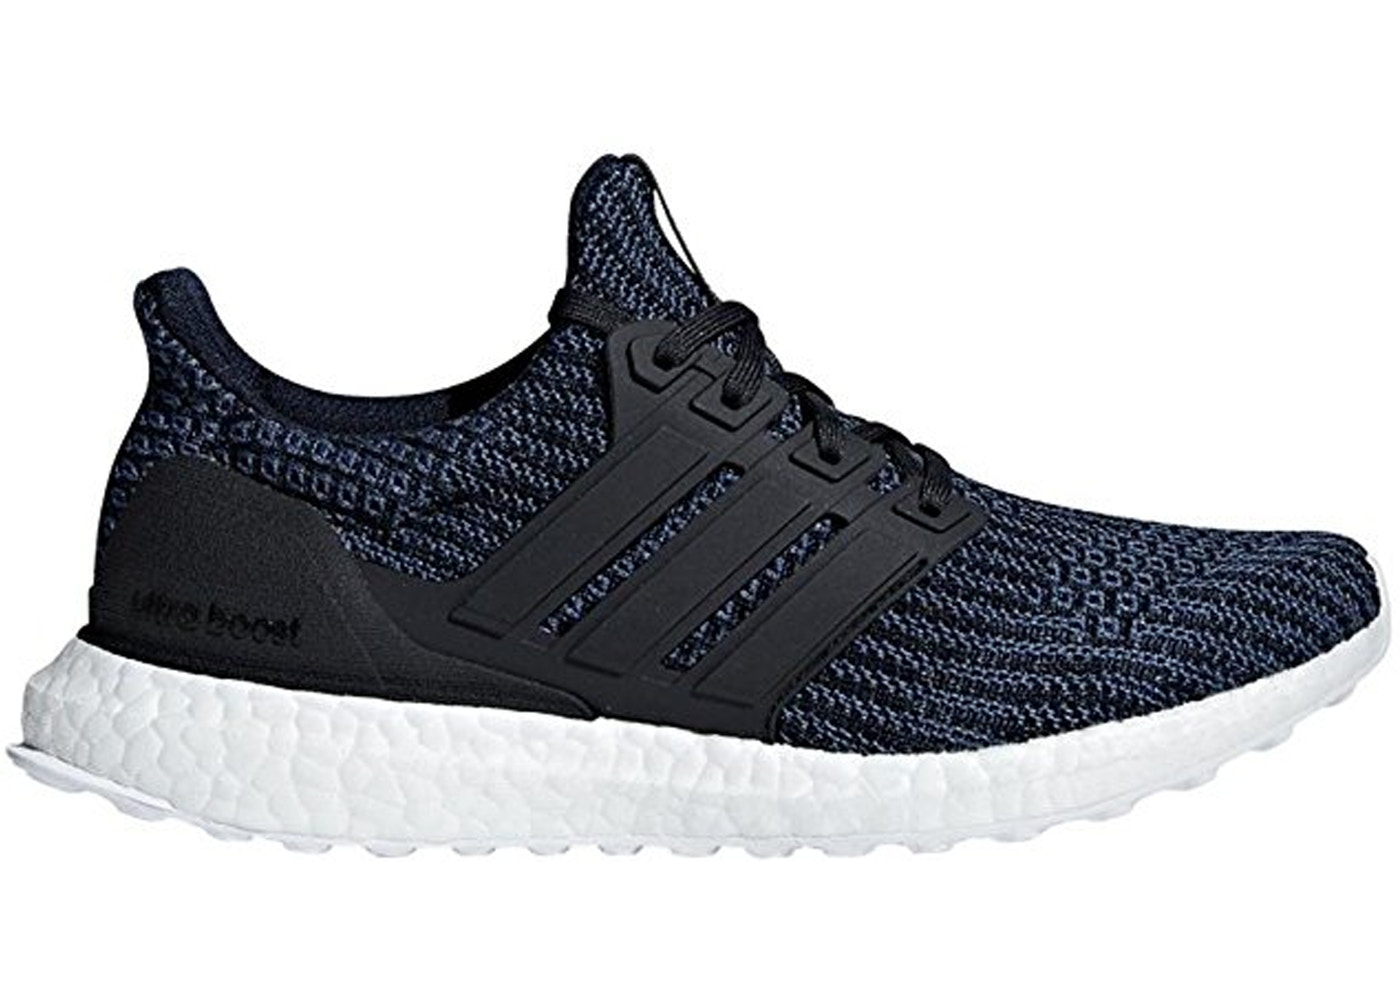 adidas Ultra Boost 4.0 SYS Tech Ink CM8113 Sneakerjagers